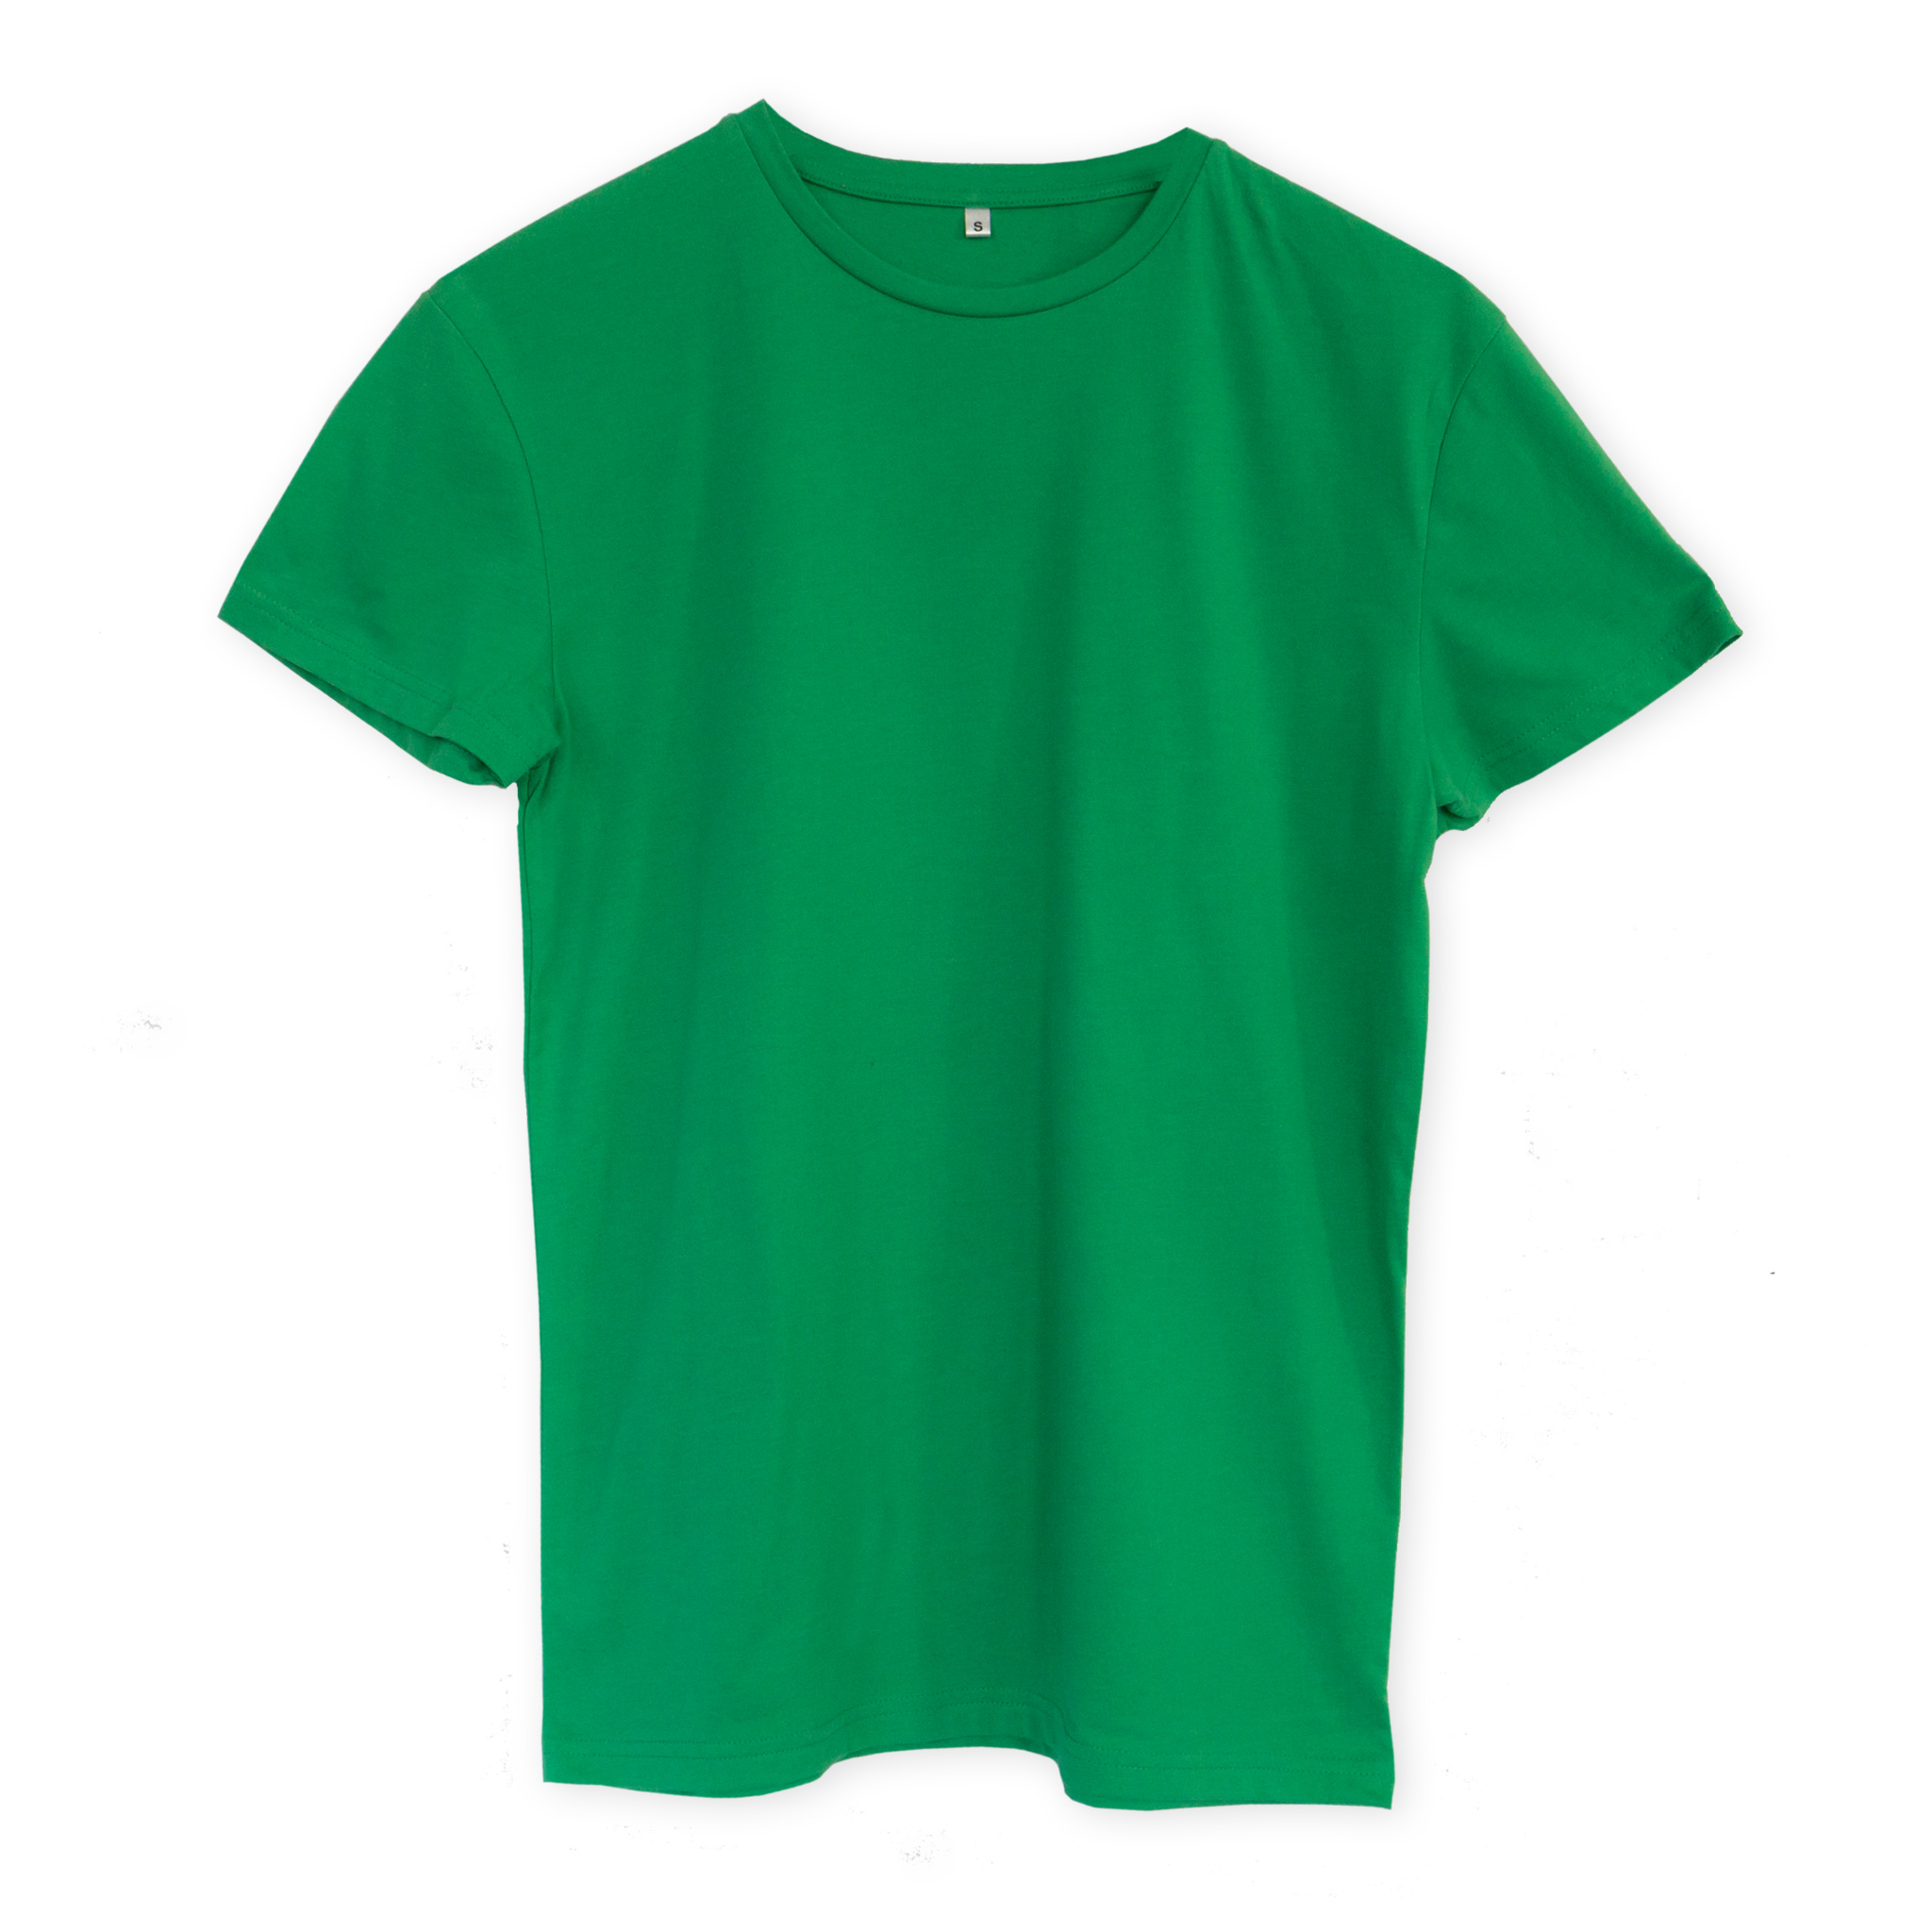 T-shirt men green